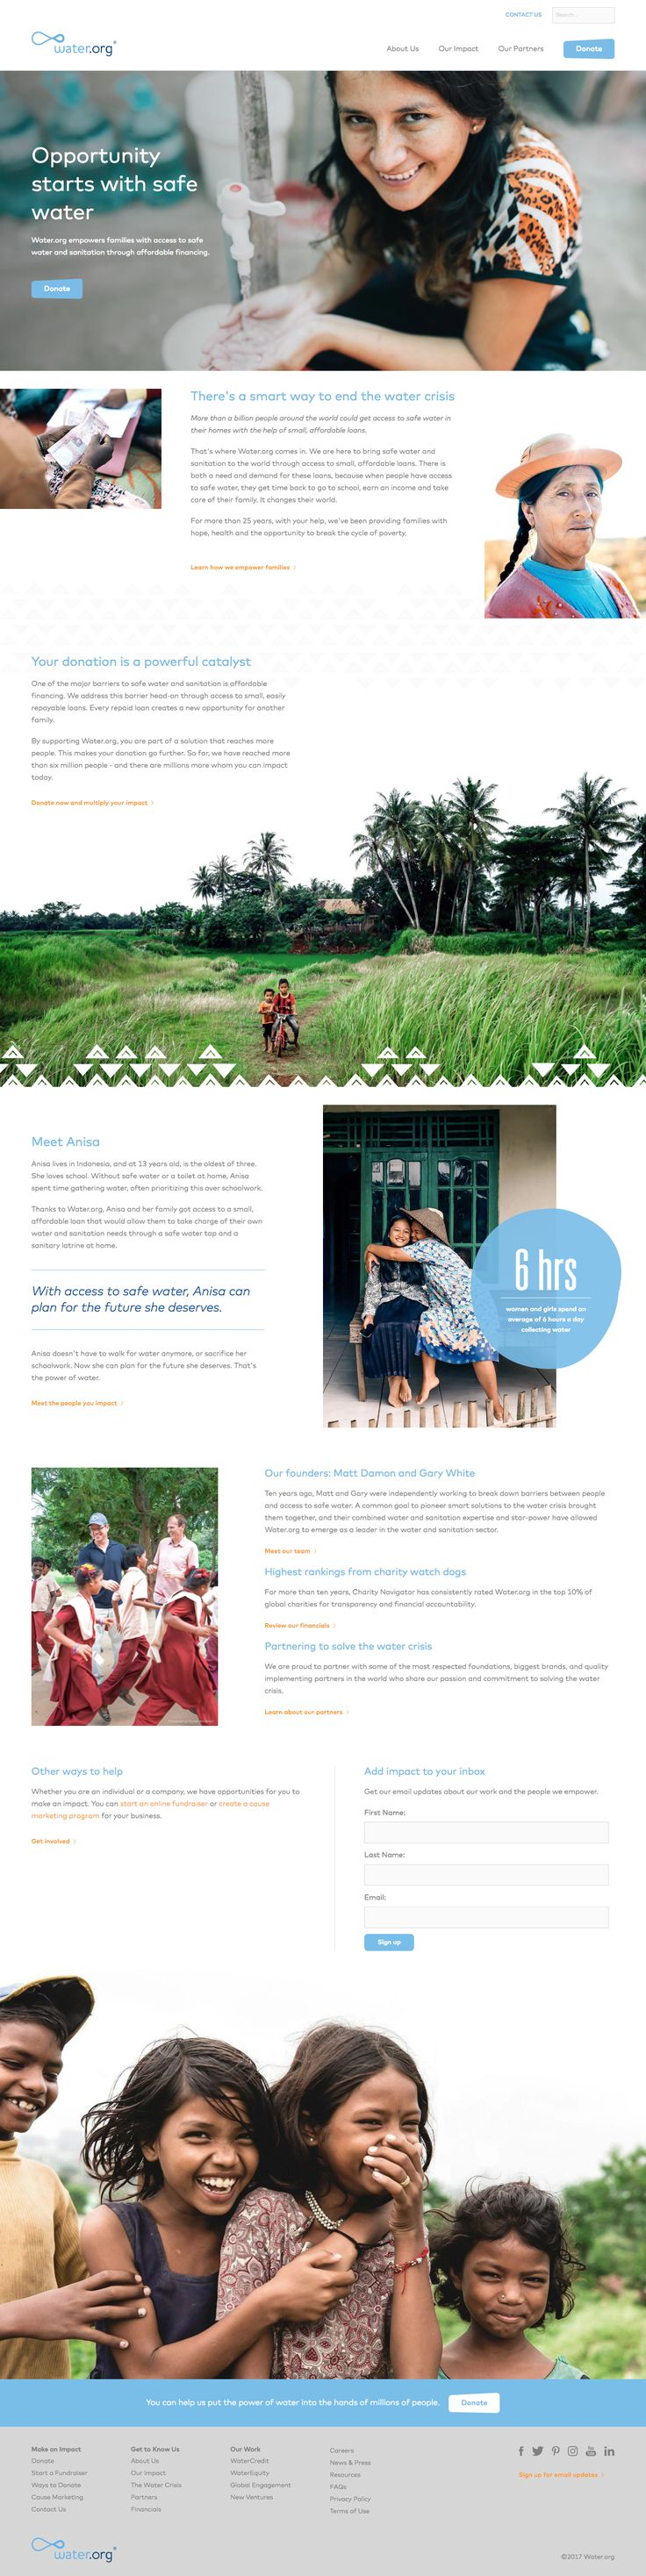 NGO, design is 100% focused on its social impact. The design is clean, much better than other NGO websites.